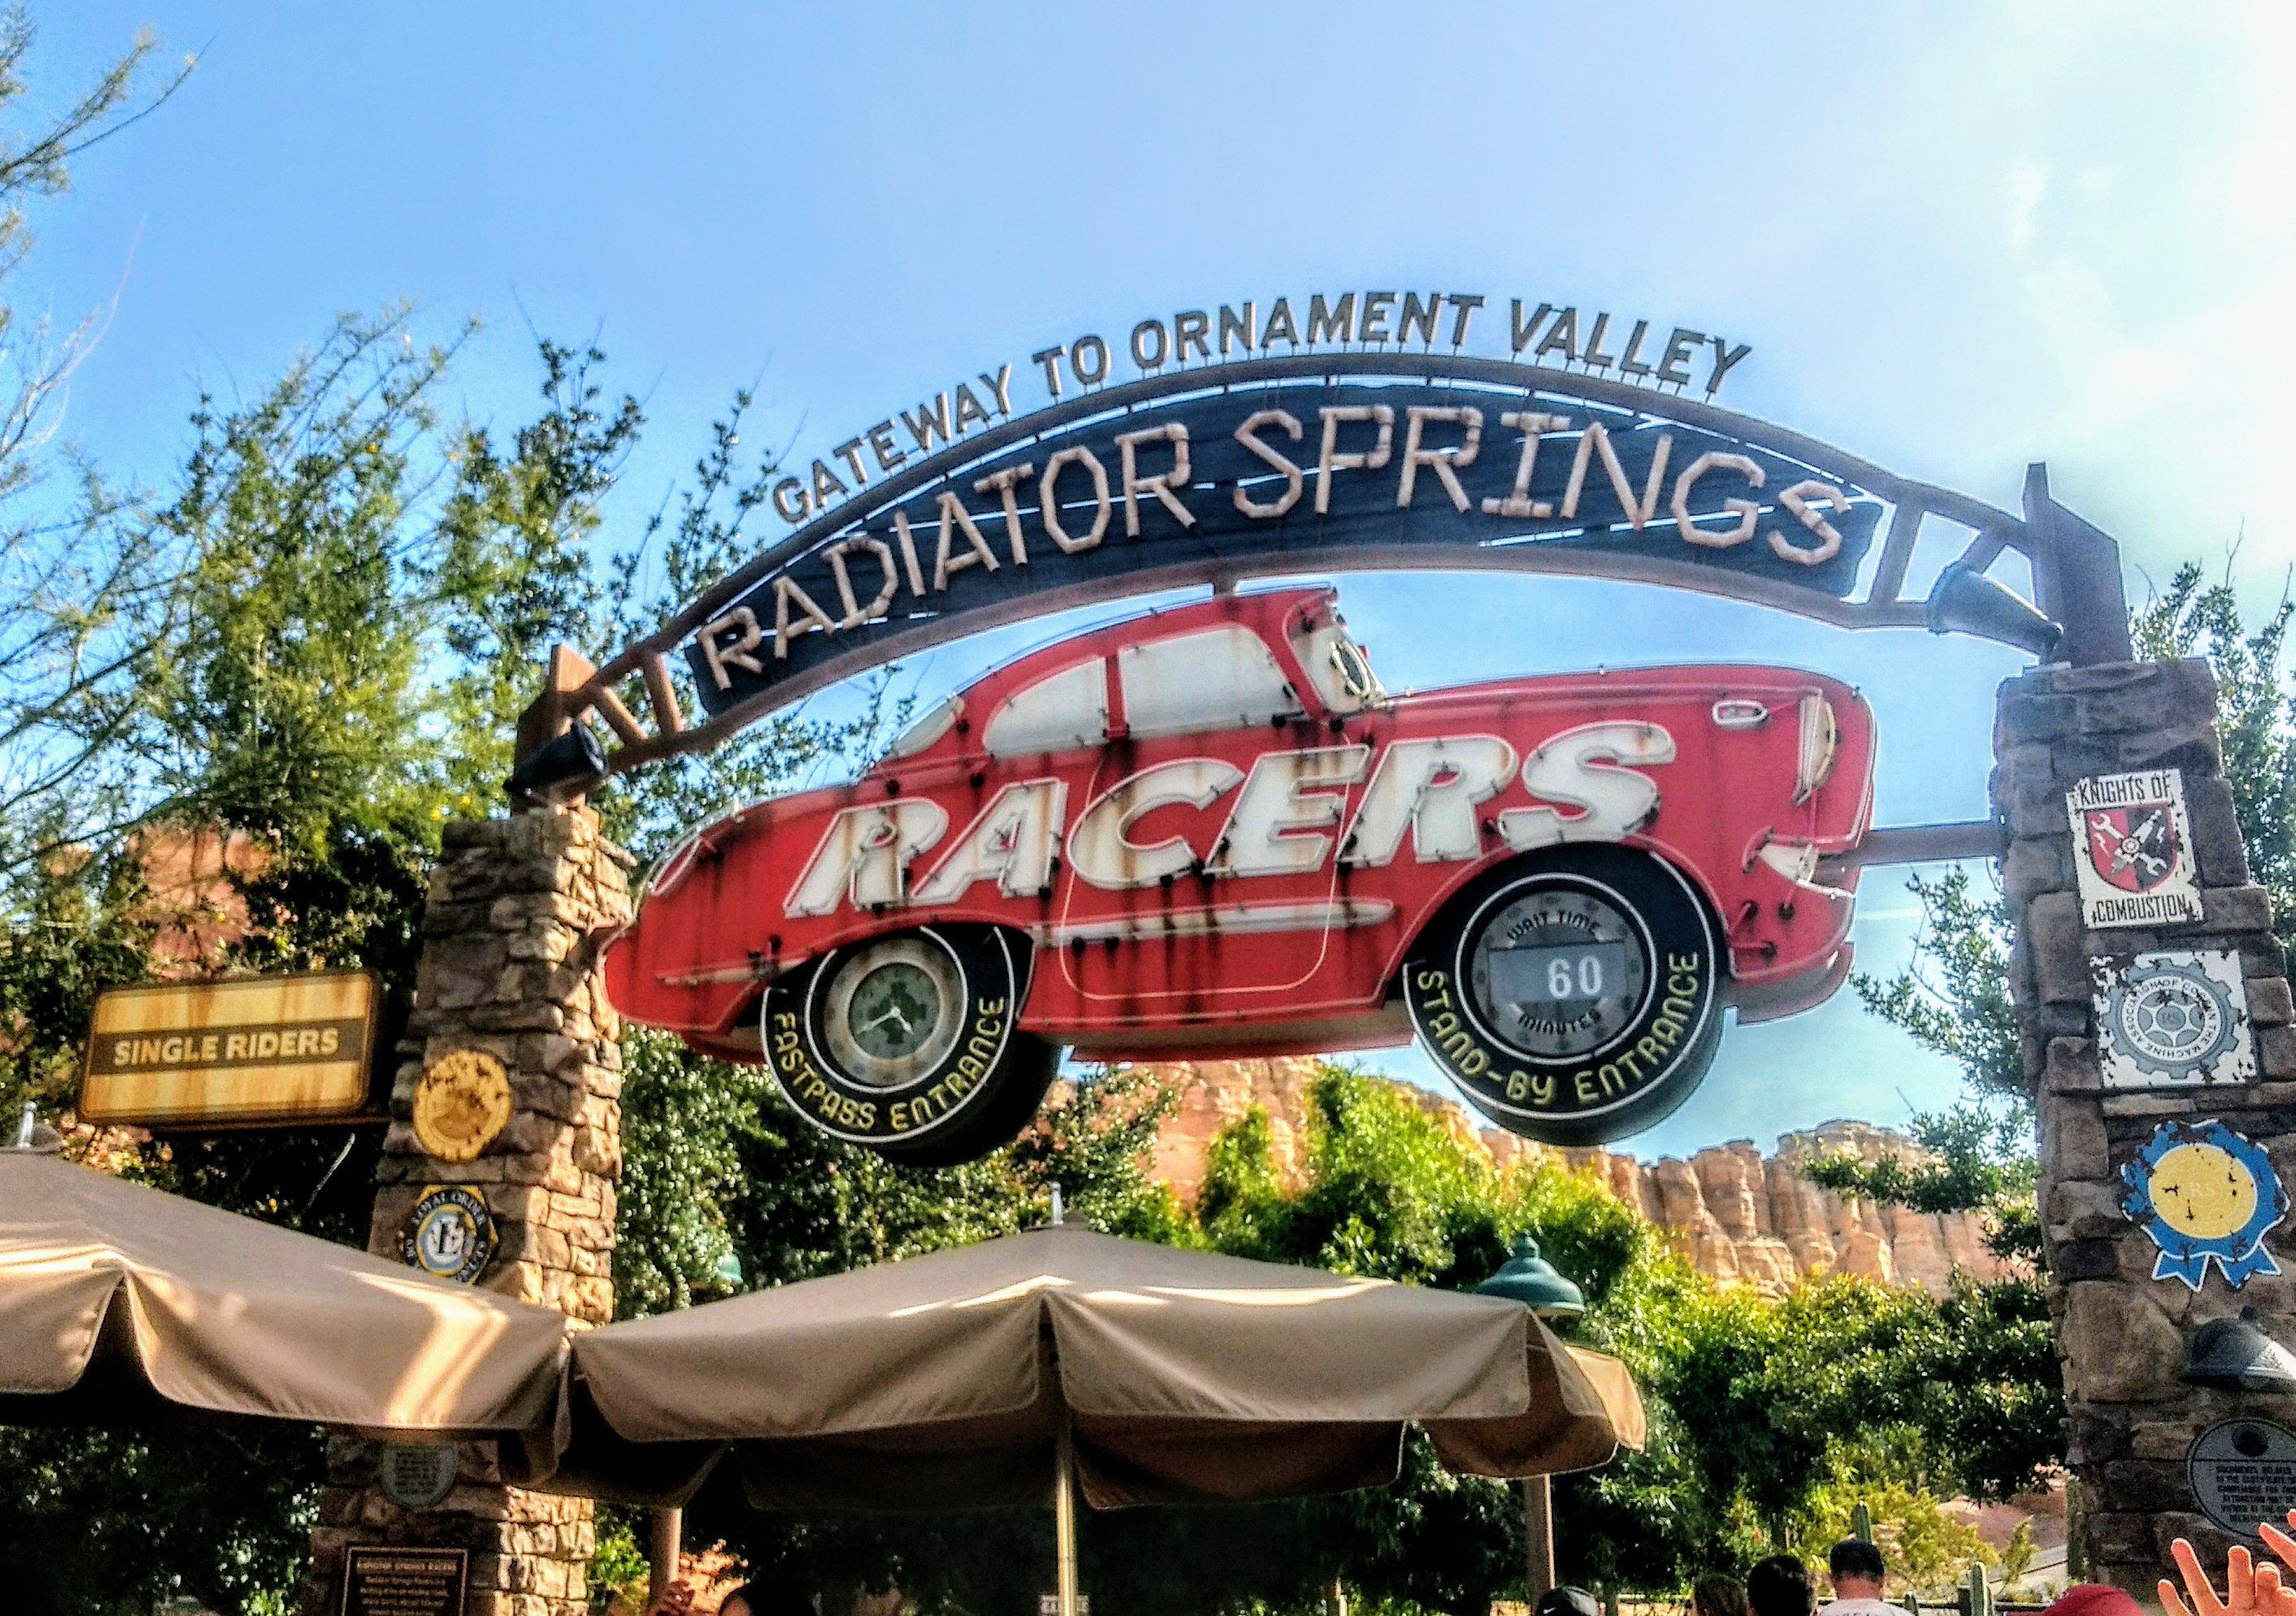 Stand-by for Radiator Springs Racers is 60 minutes, Disneyland MaxPass will cut that wait time down to 5-10 minutes.